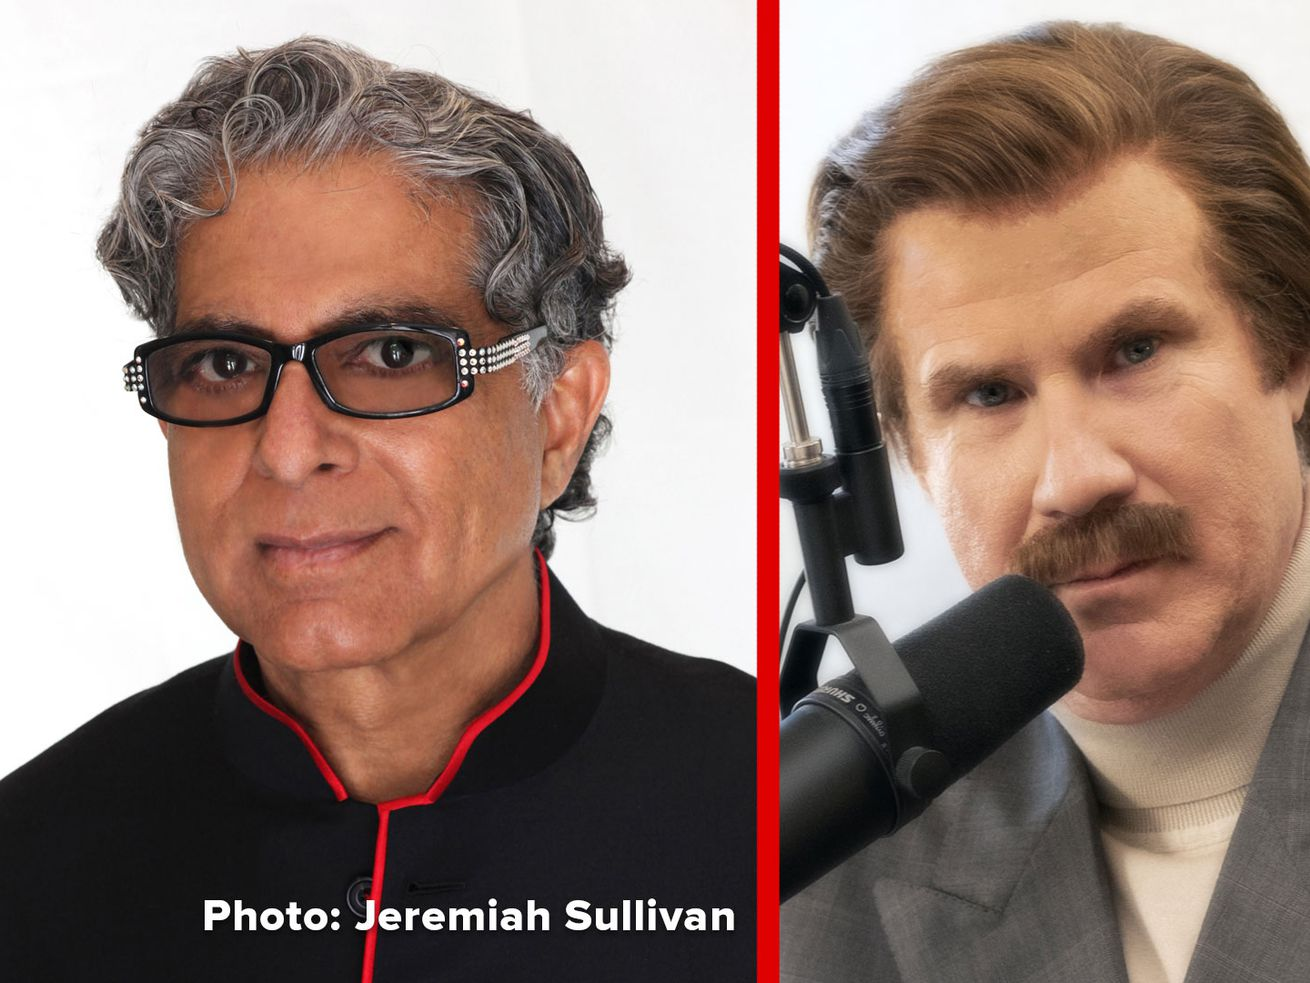 Ron Burgundy Asks Deepak Chopra Life's Biggest Questions in The Ron Burgundy Podcast Episode 2